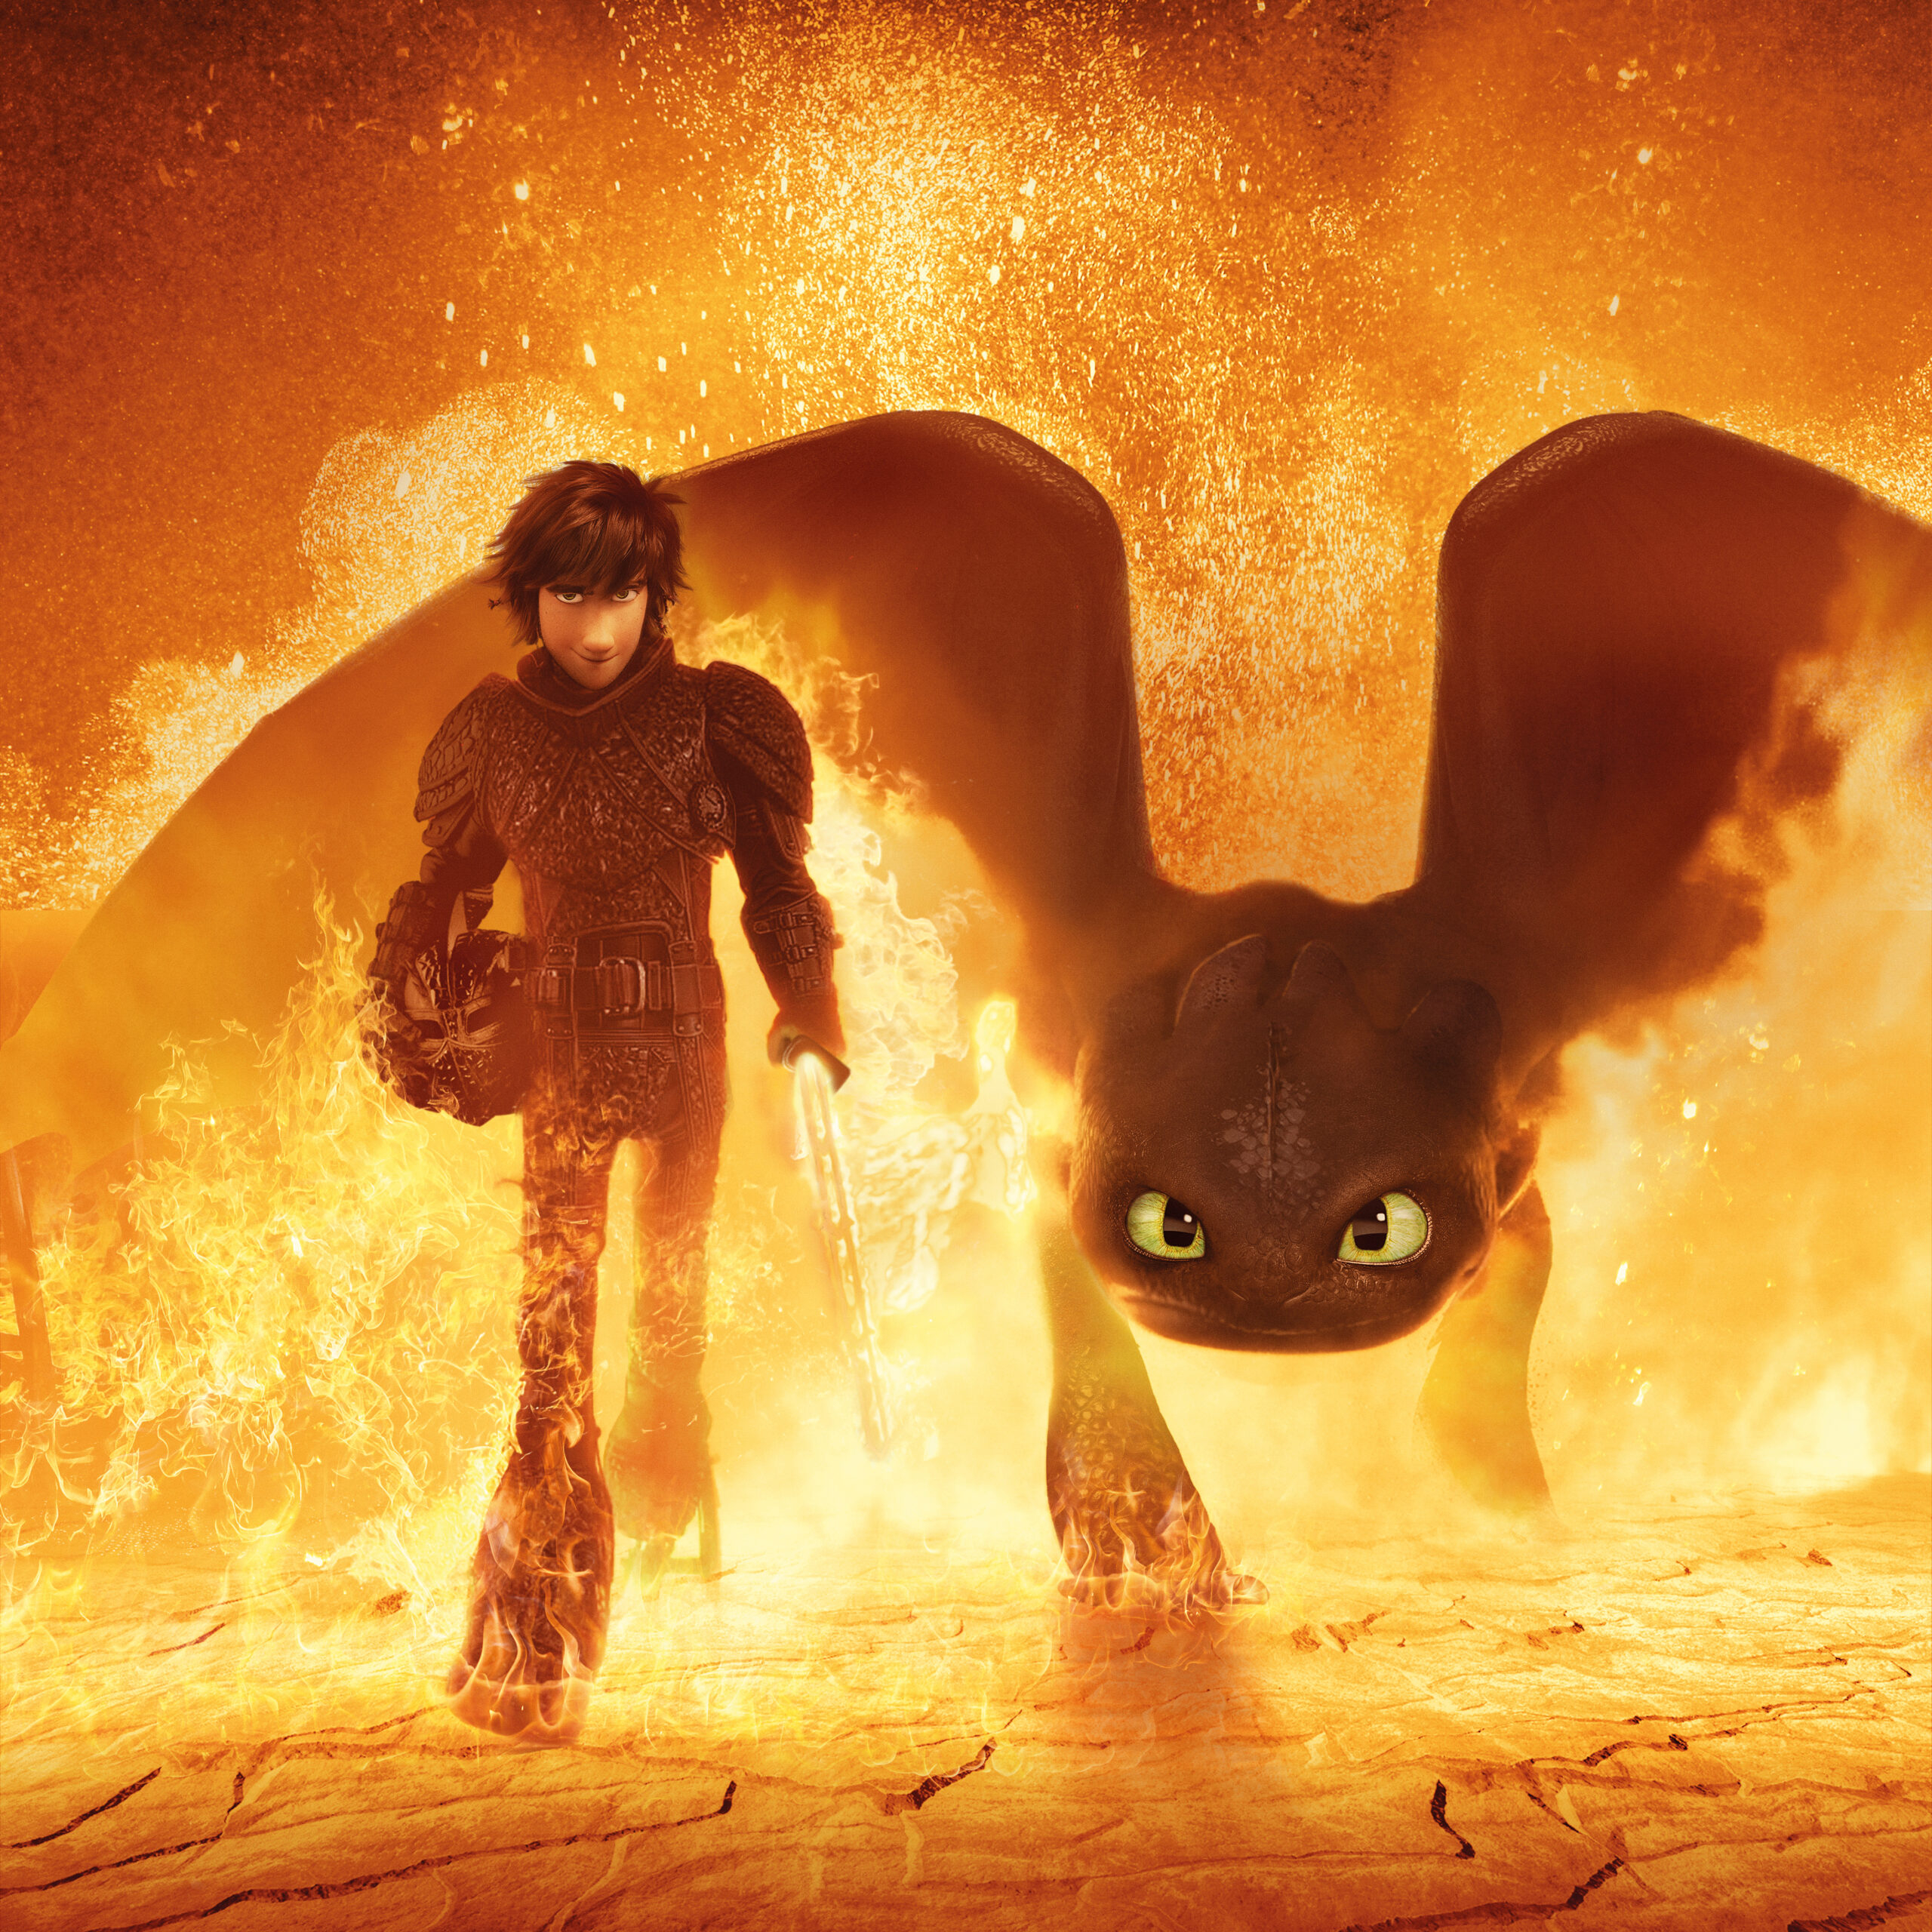 how to train your dragon 3 4750x4750 how to train your dragon from wallpaperhook